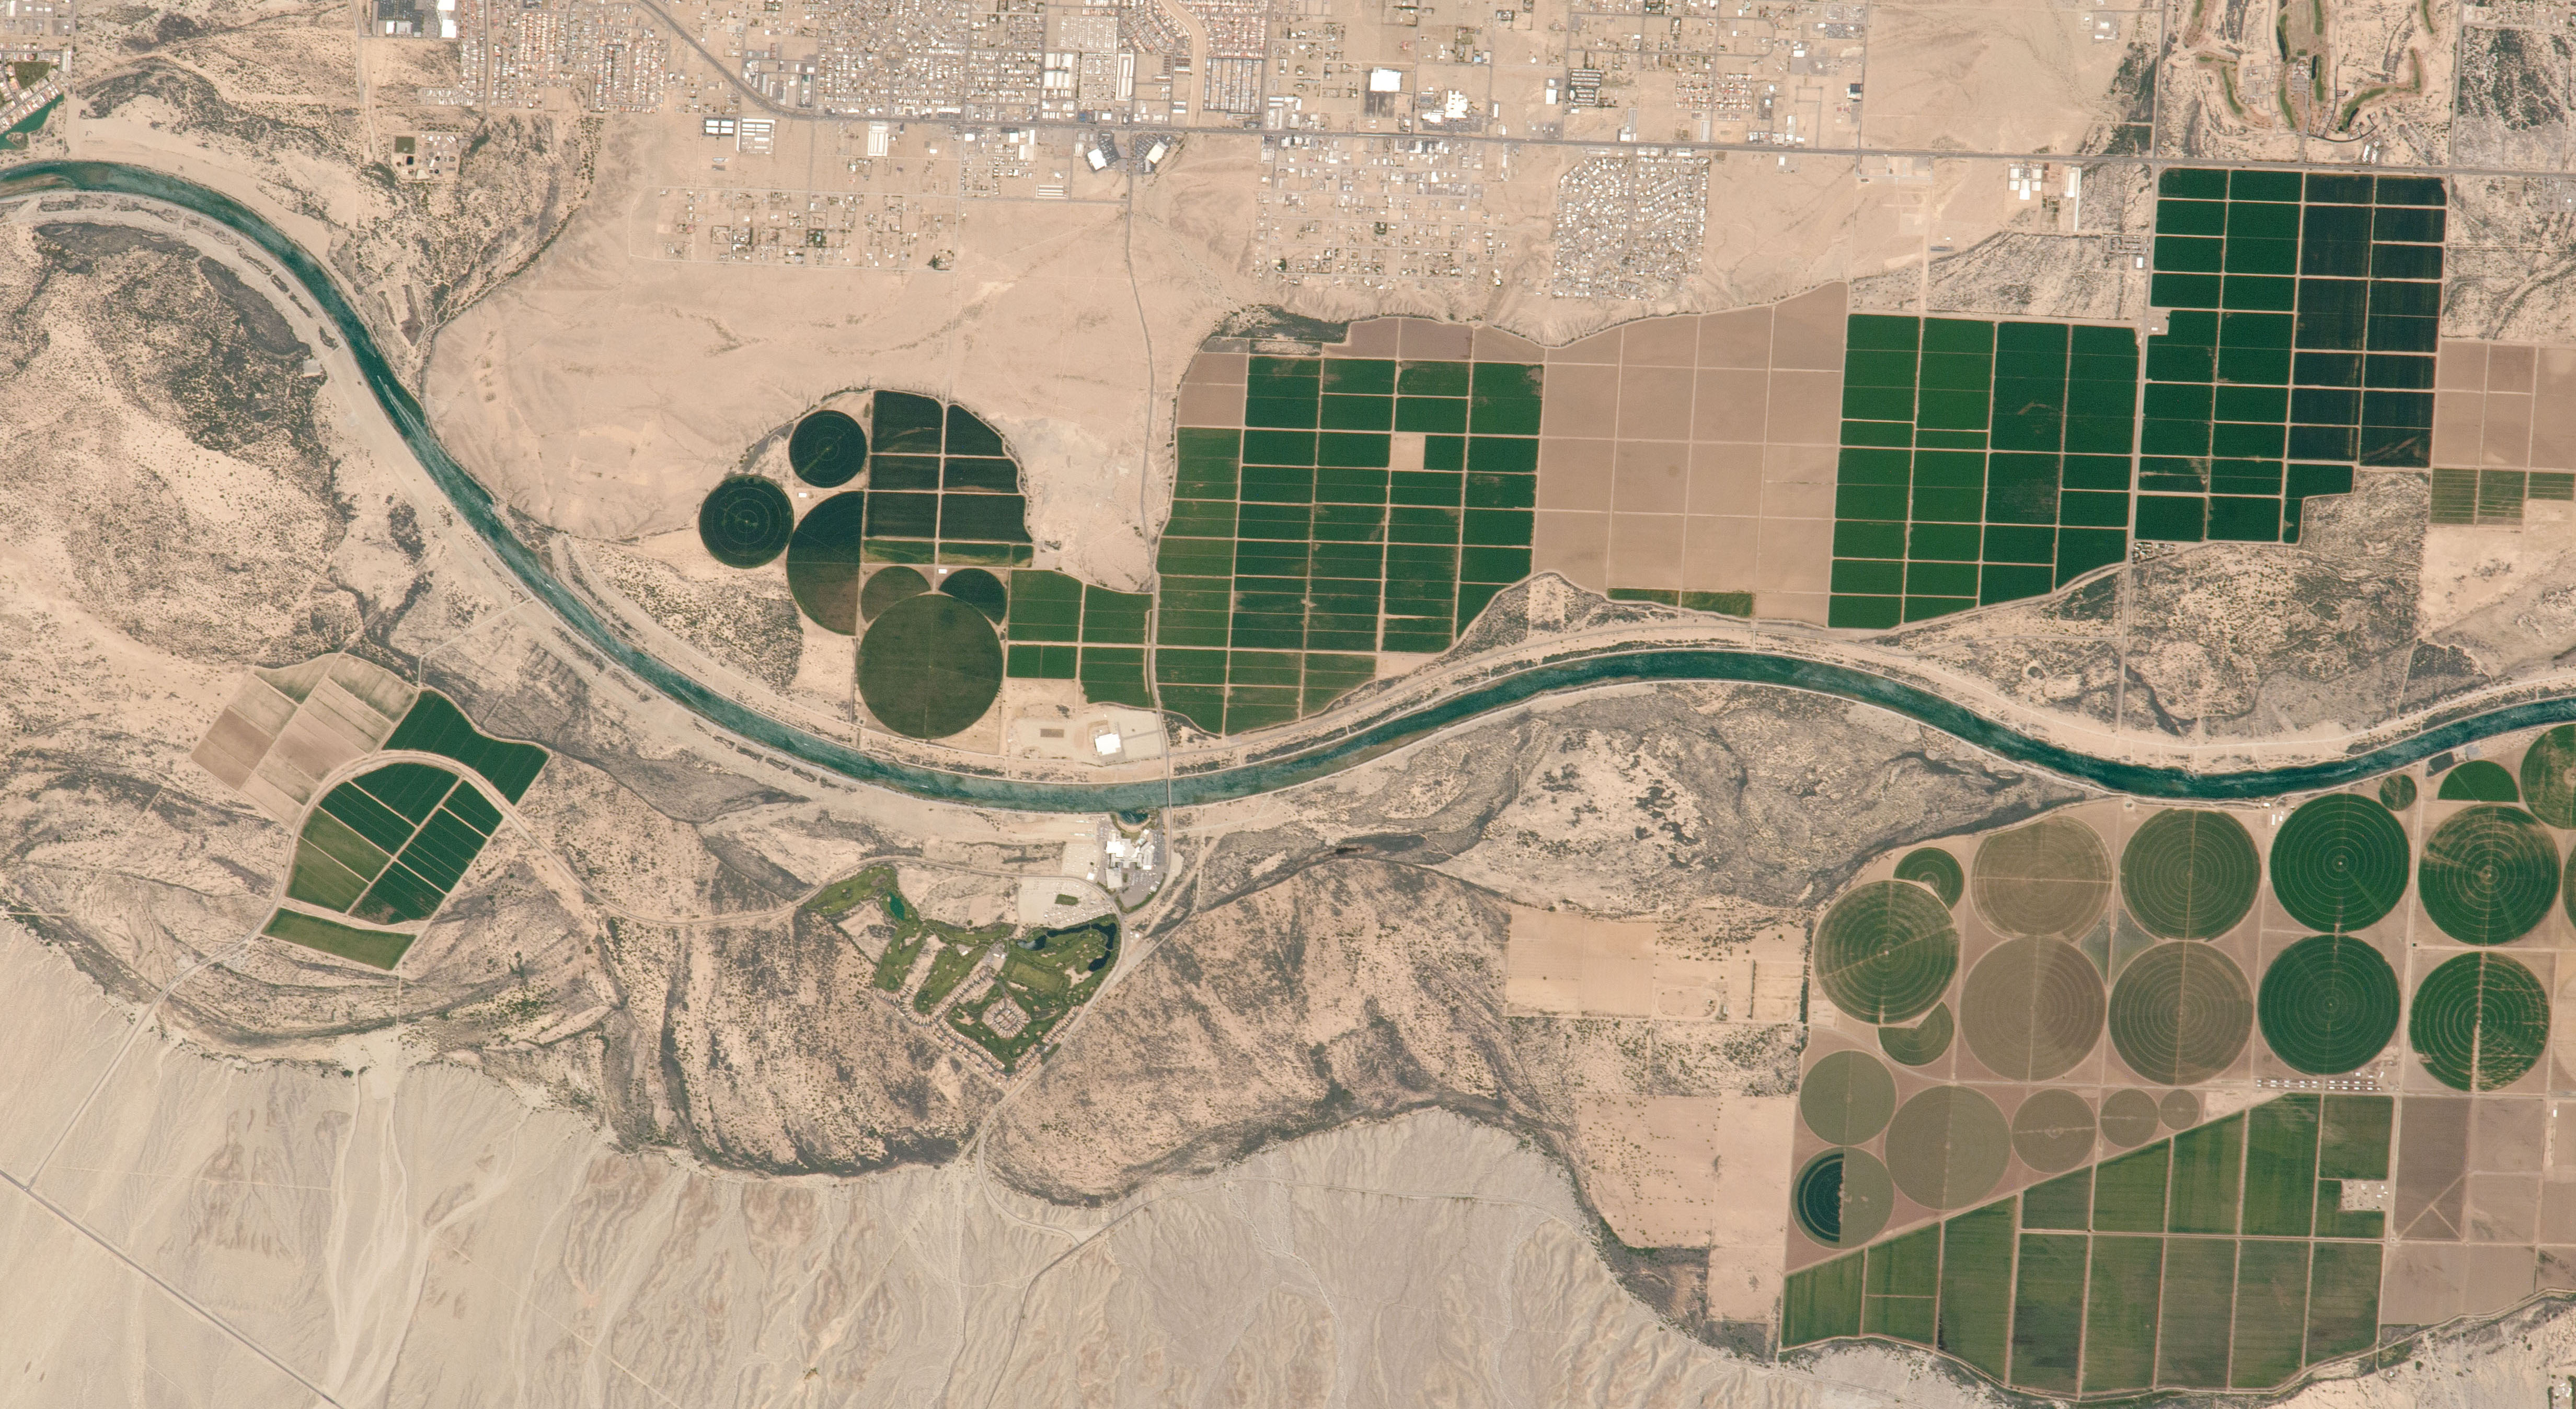 Farms rise from a floodplain where the Mojave nation meets Arizona, Nevada, and California. Astronaut photo ISS051-E-13172 was acquired on April 14, 2017 aboard the International Space Station. I